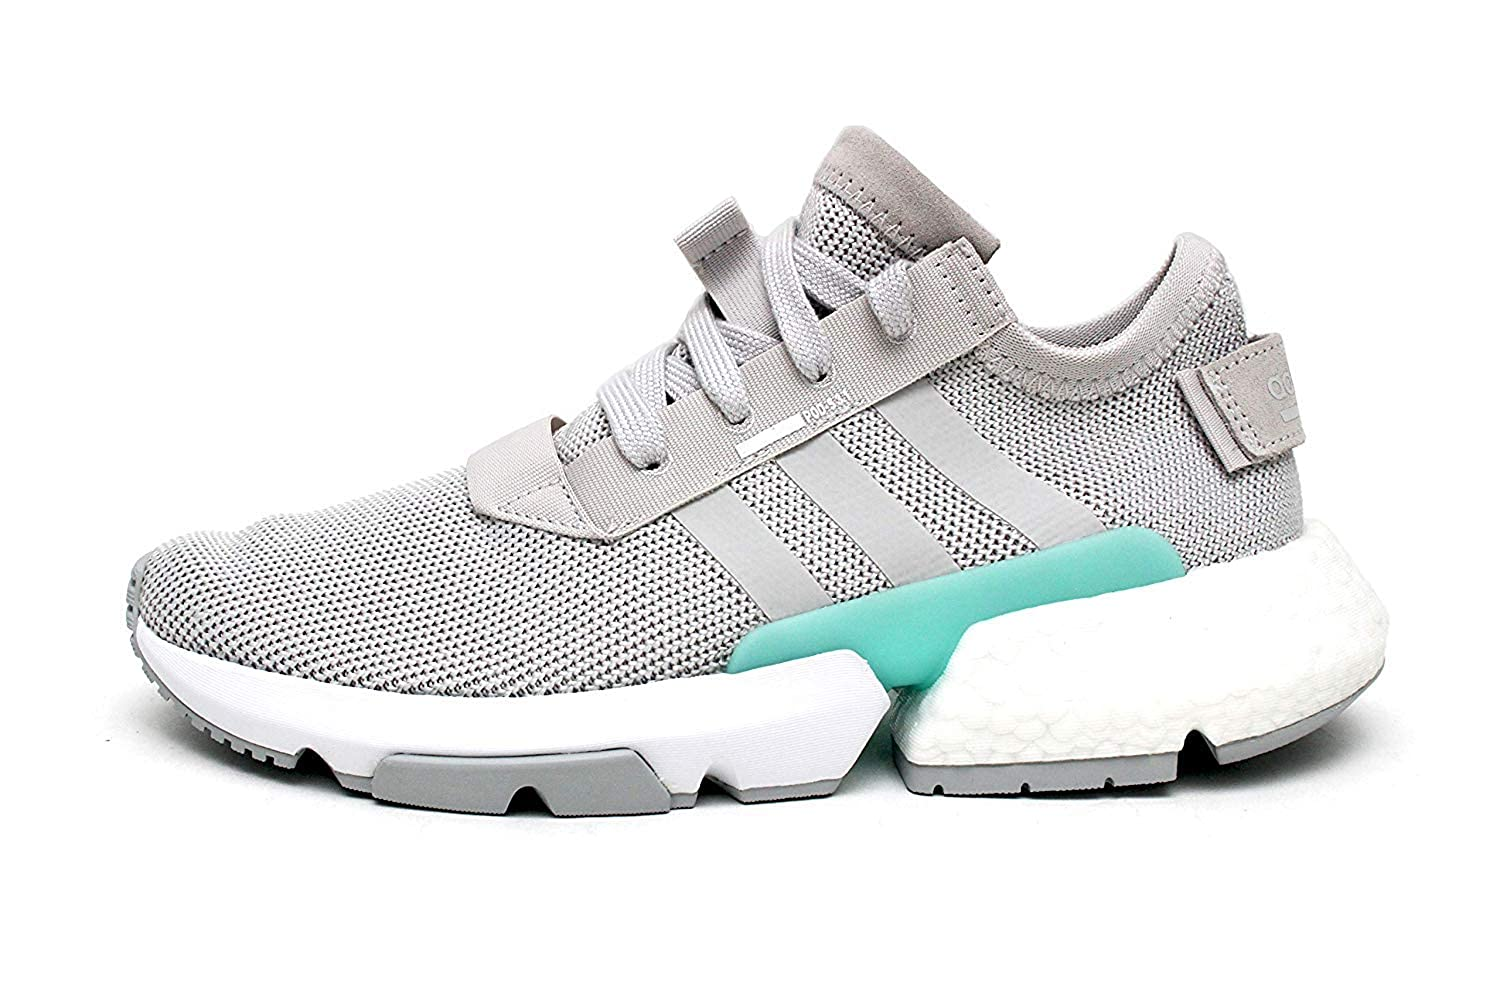 Grey One-Clear Mint Adidas Originals PODS3.1 shoes Women's Casual